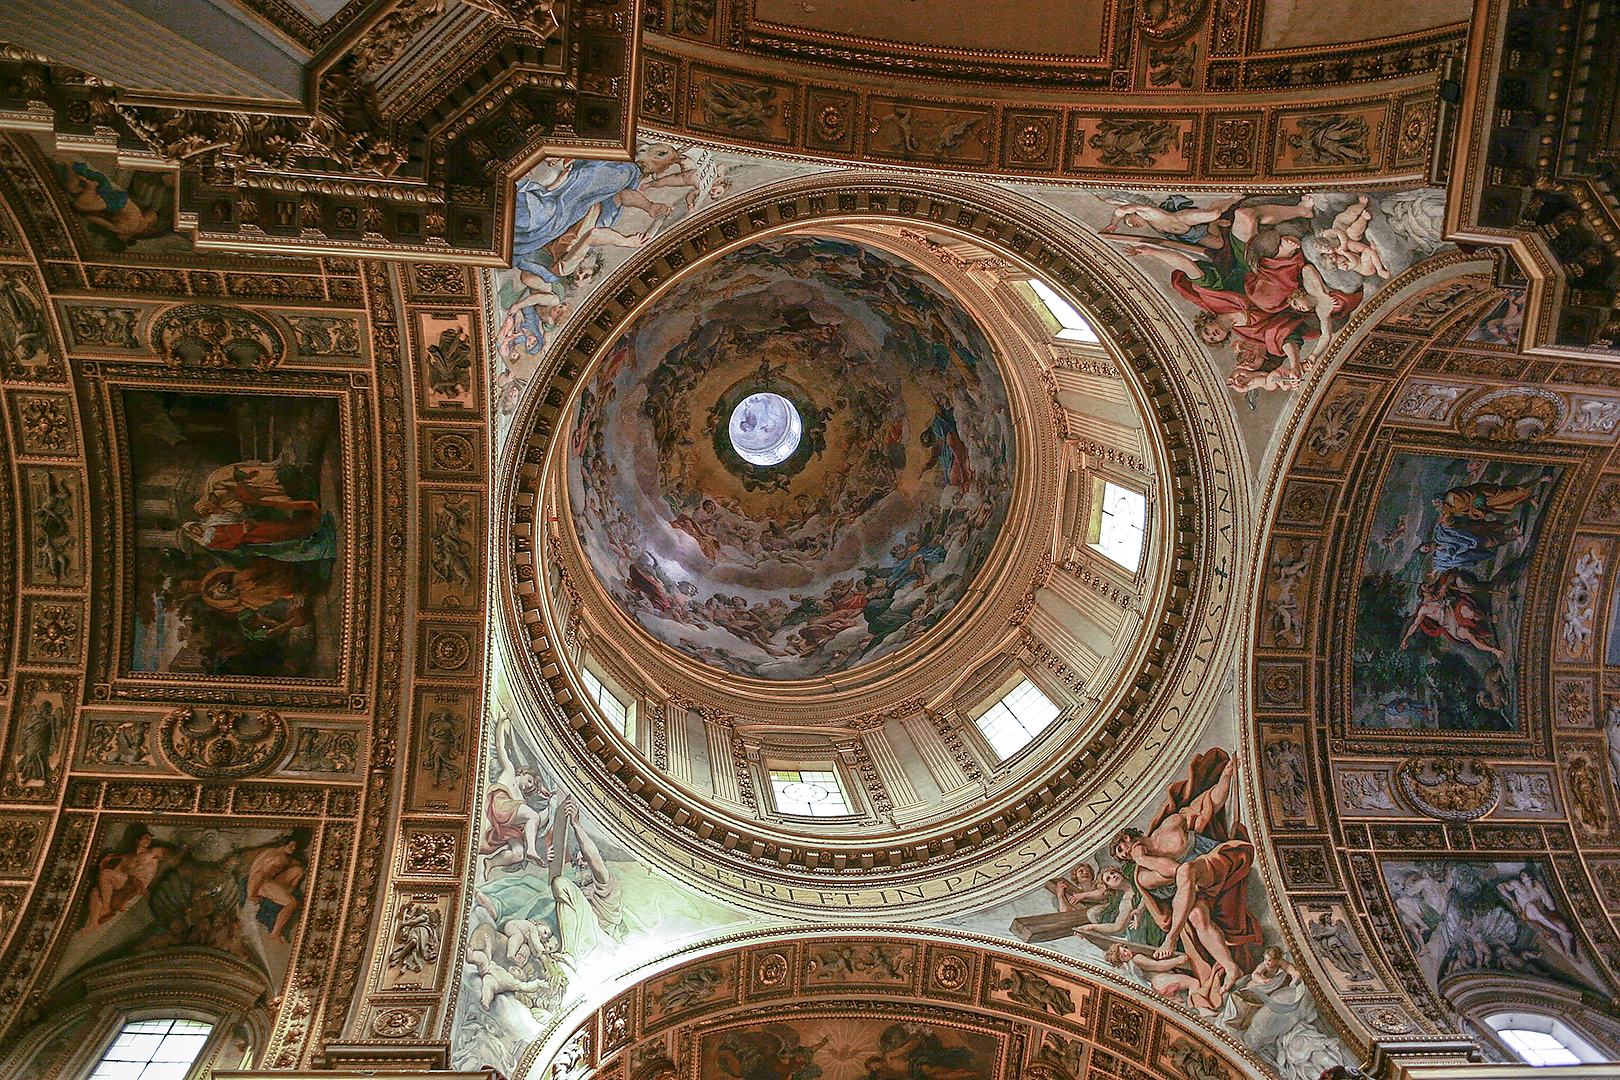 Dome of an unknown basilica